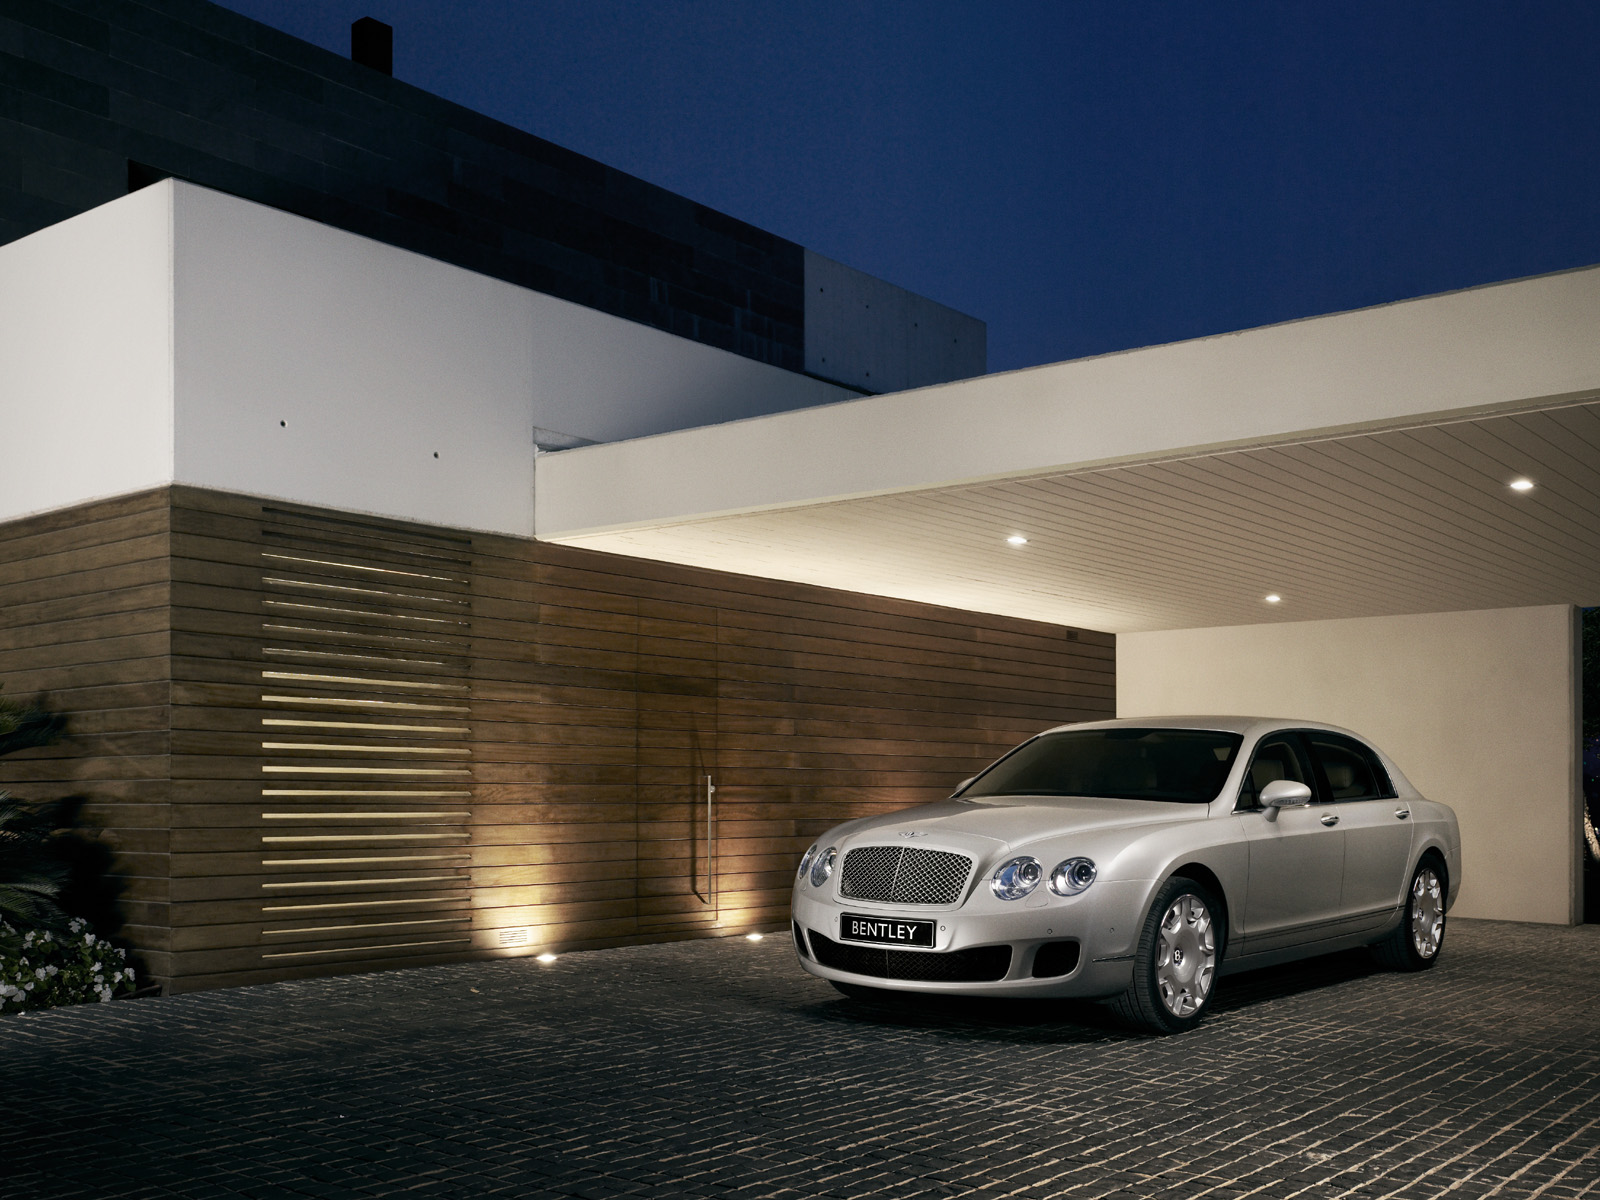 Bentley Continental Flying Spur Wallpapers and Background Images 1600x1200